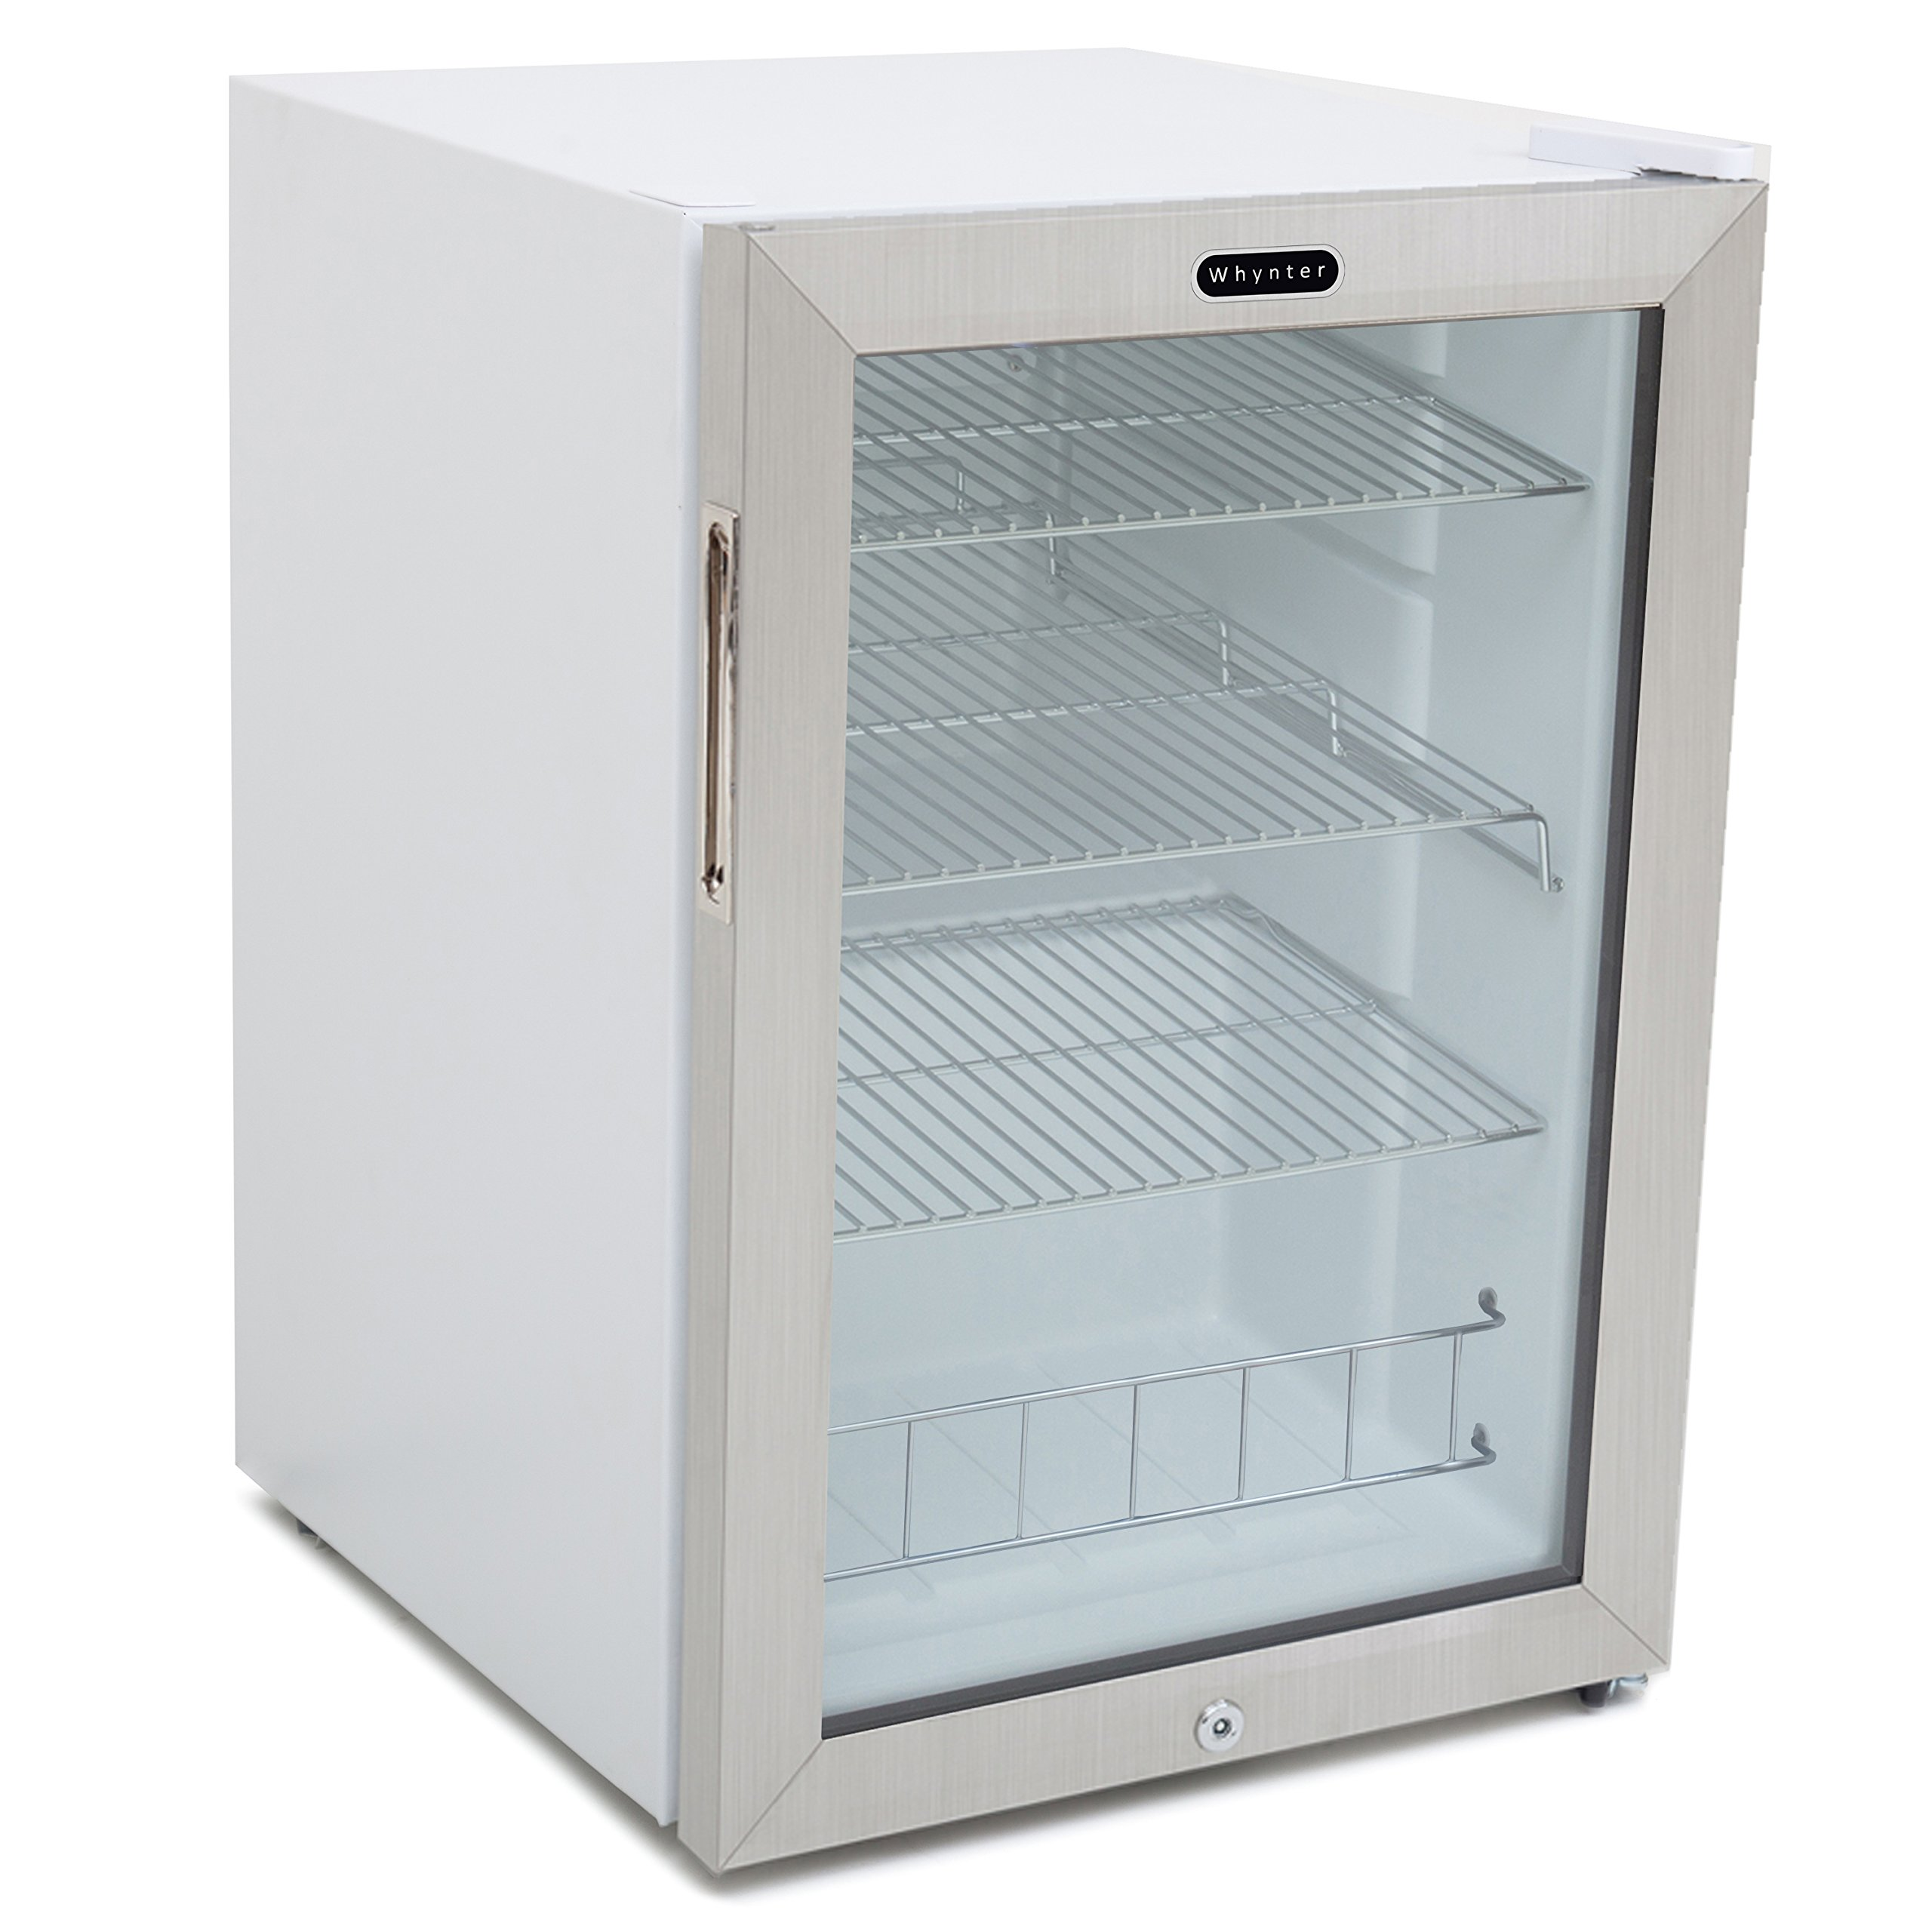 Whynter BR-091WS Beverage Refrigerator with Lock, 90 Can Capacity ...